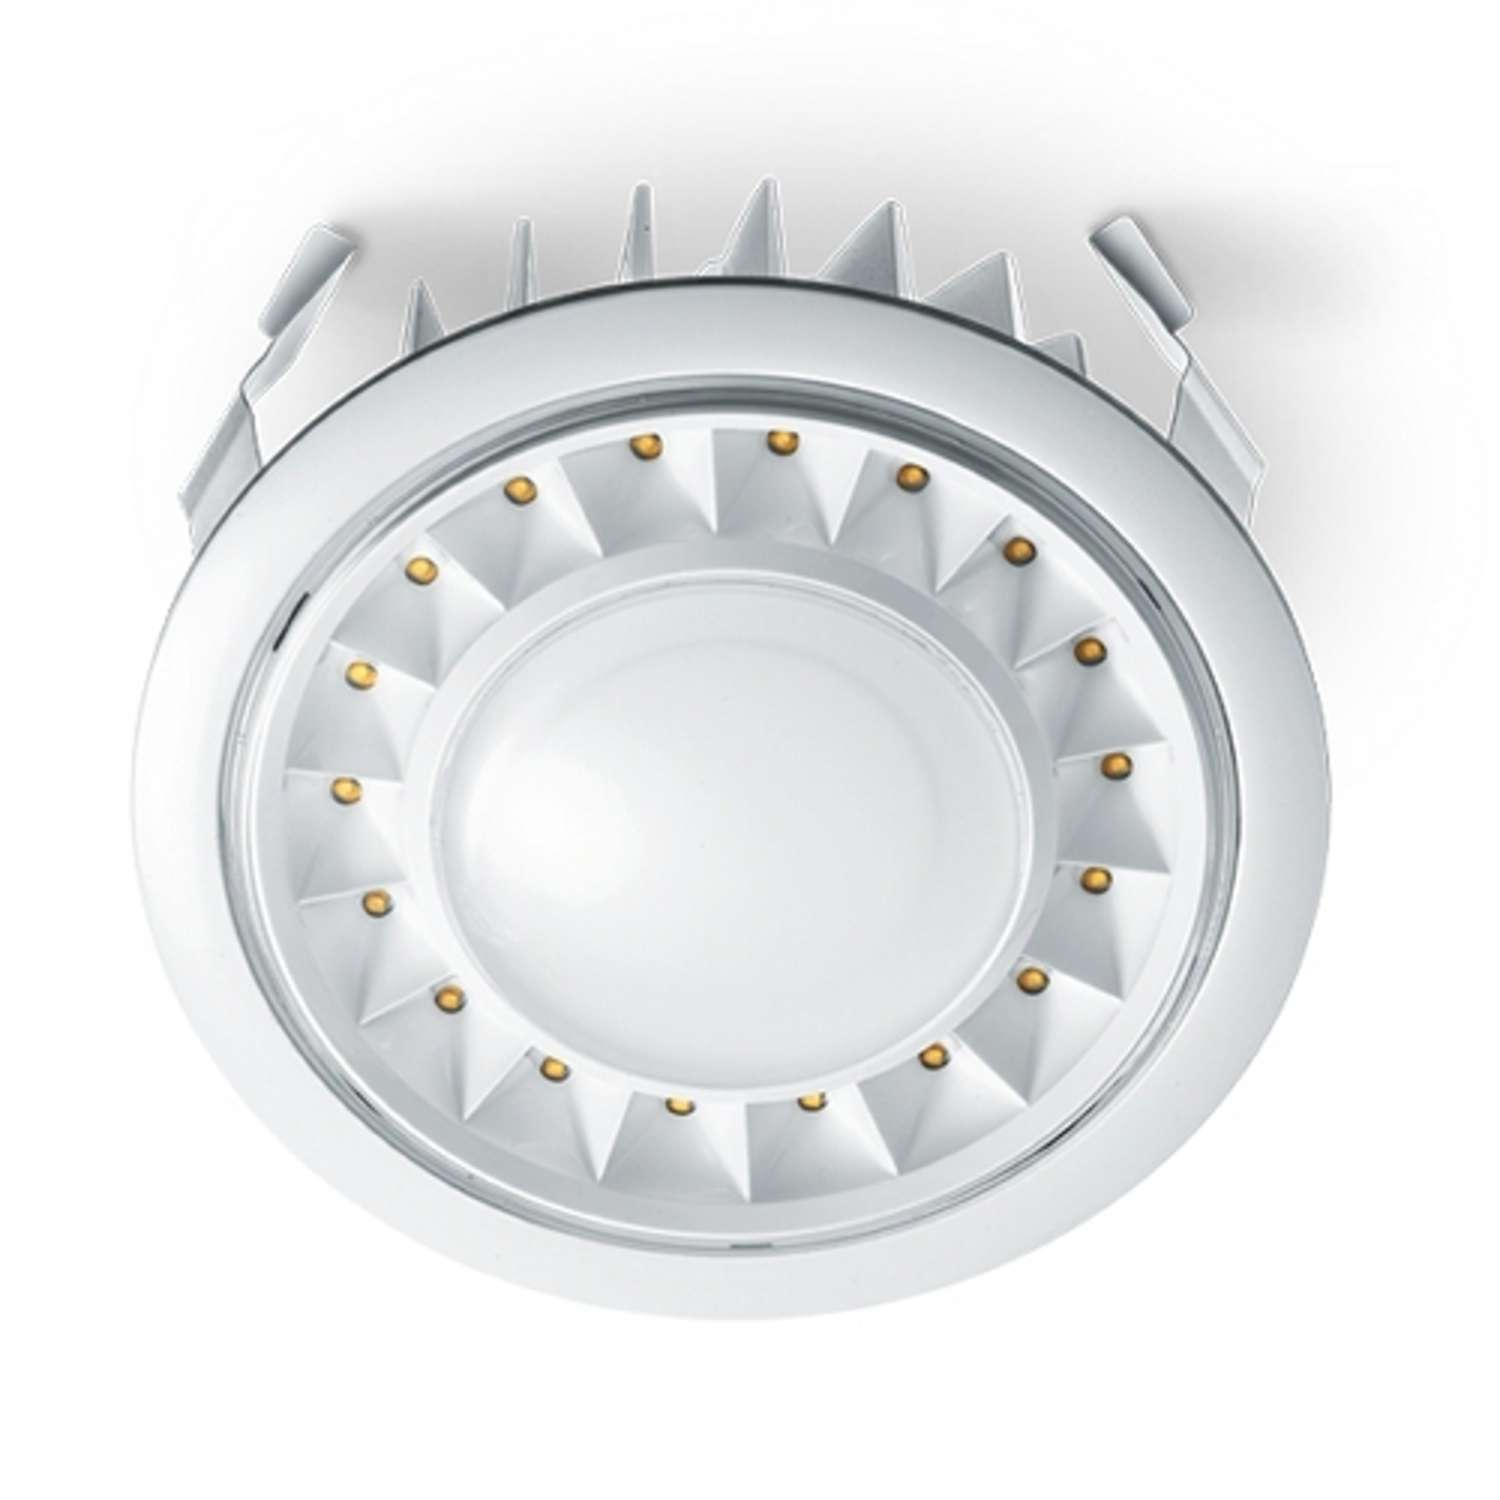 steinel sensor downlight rs pro dl led 21 w kw g nstig kaufen. Black Bedroom Furniture Sets. Home Design Ideas